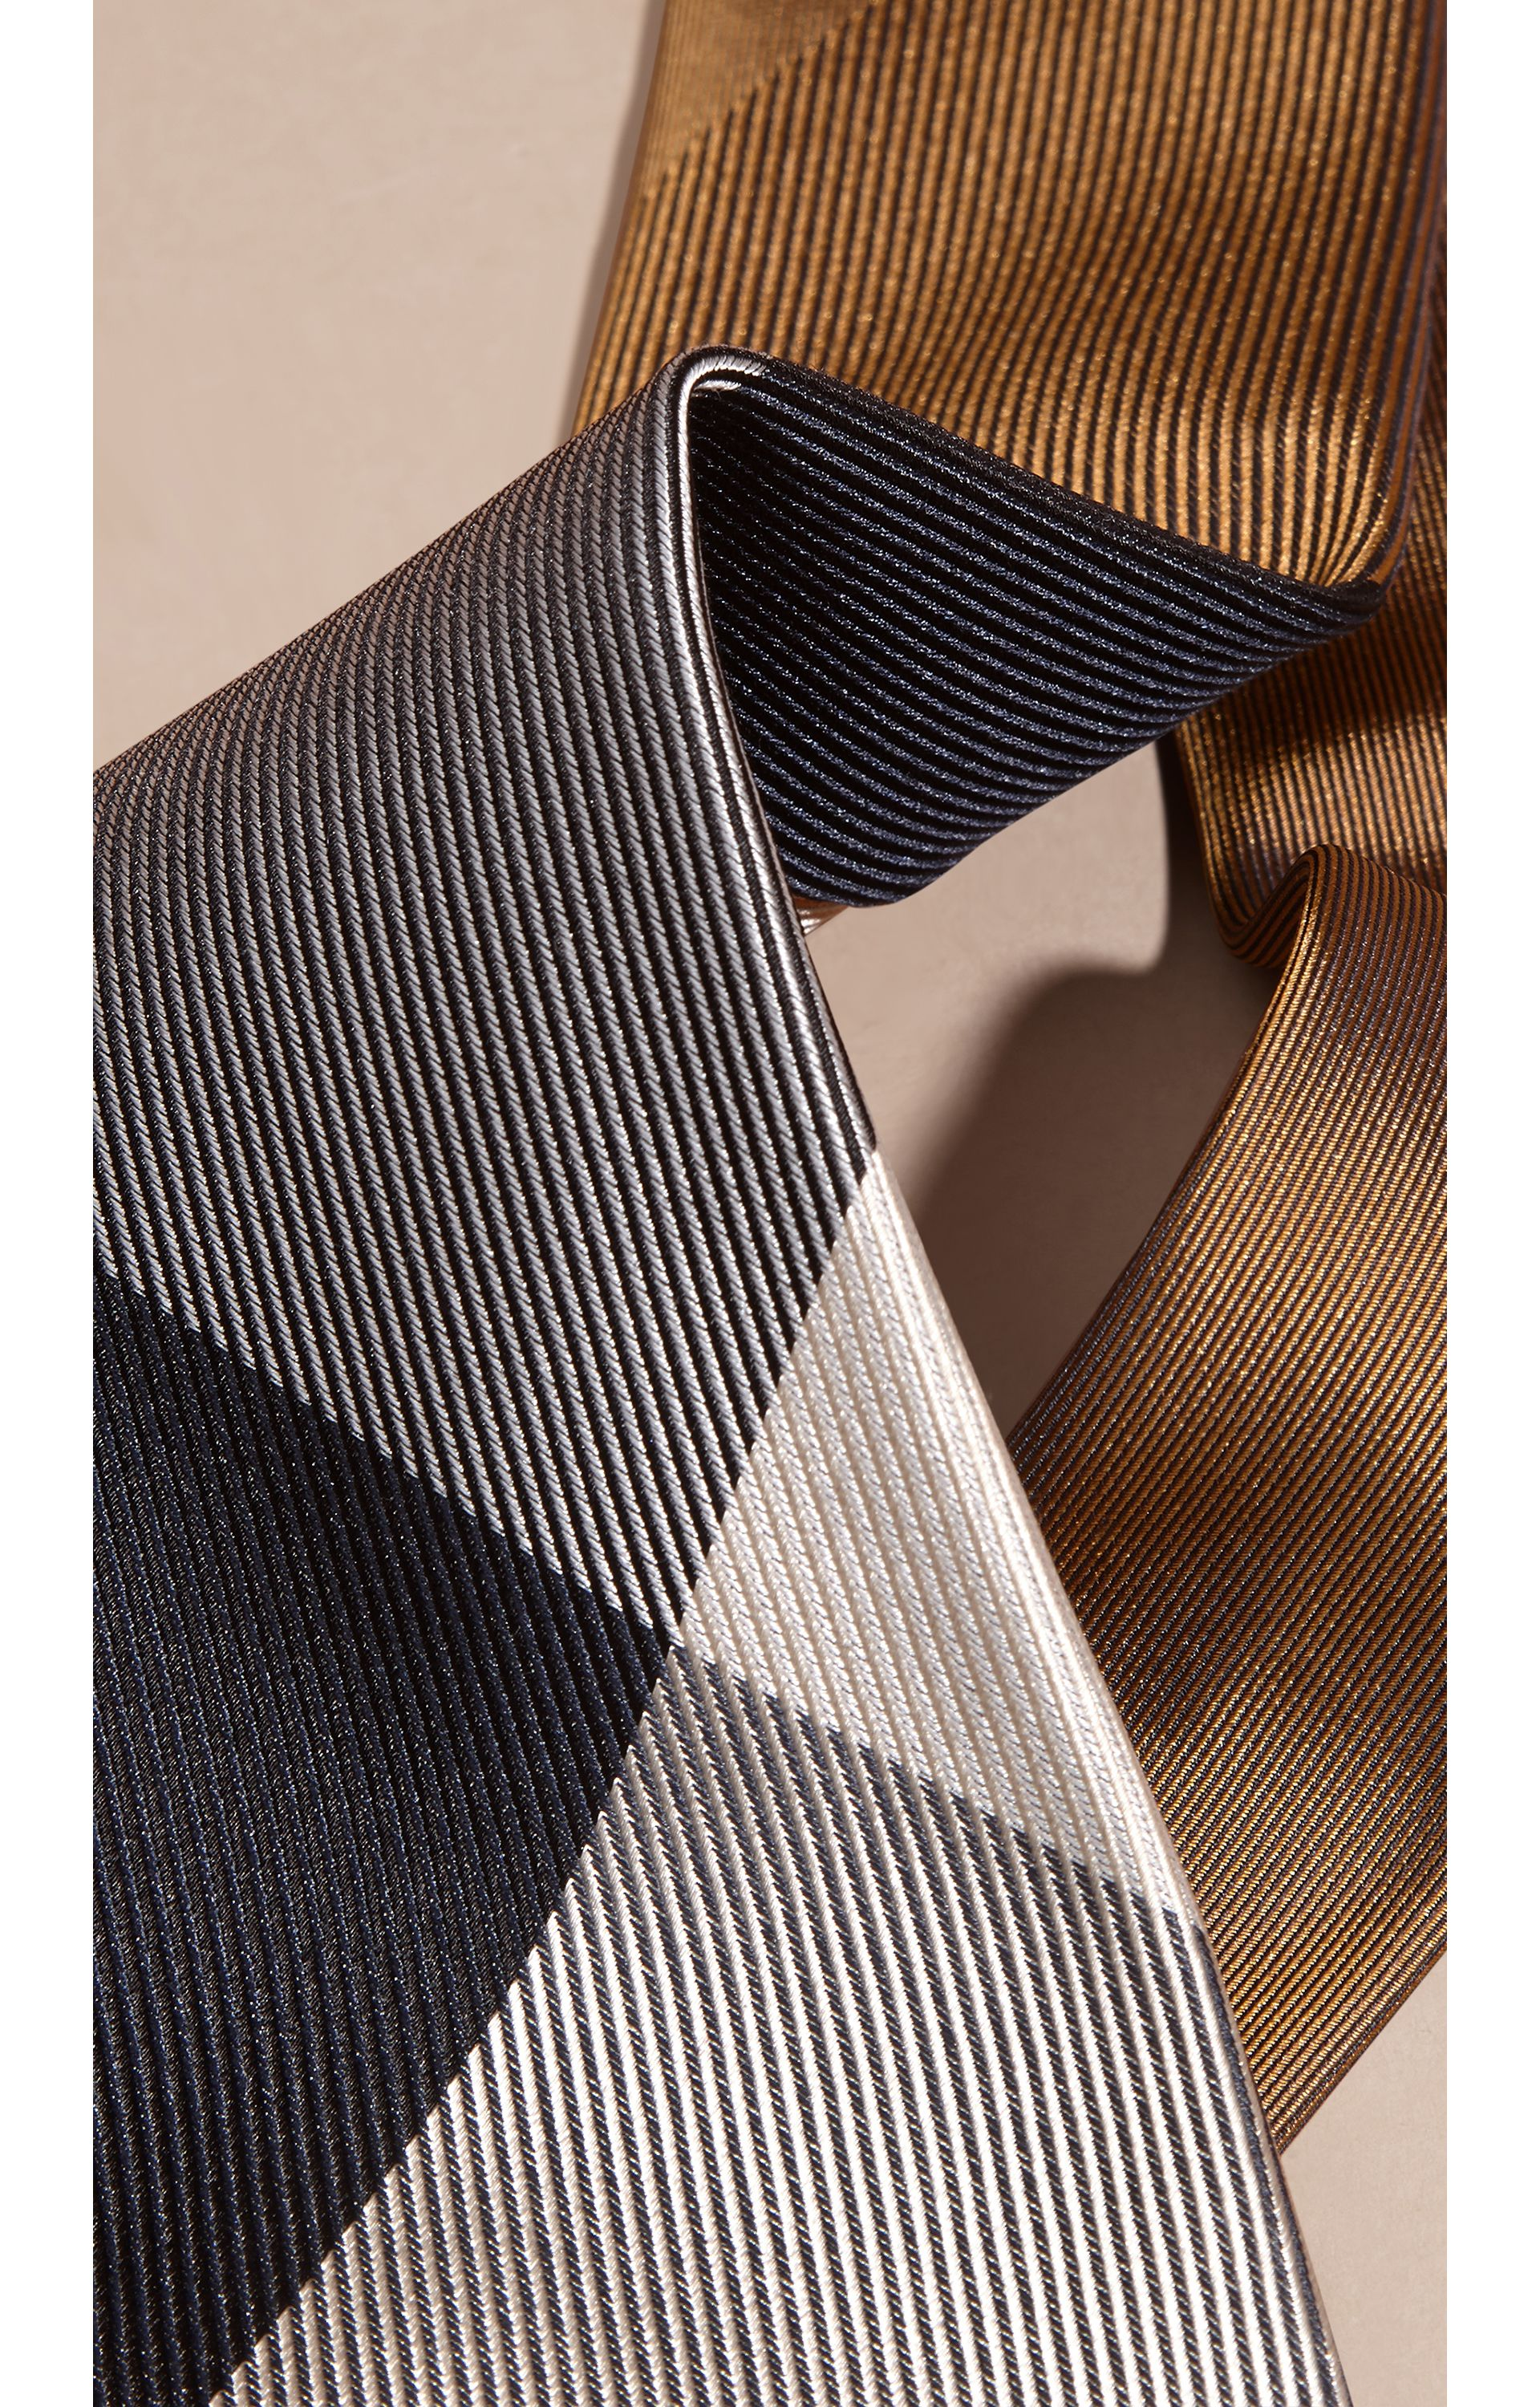 Ochre brown Modern Cut Check Jacquard Silk Tie Ochre Brown - gallery image 2